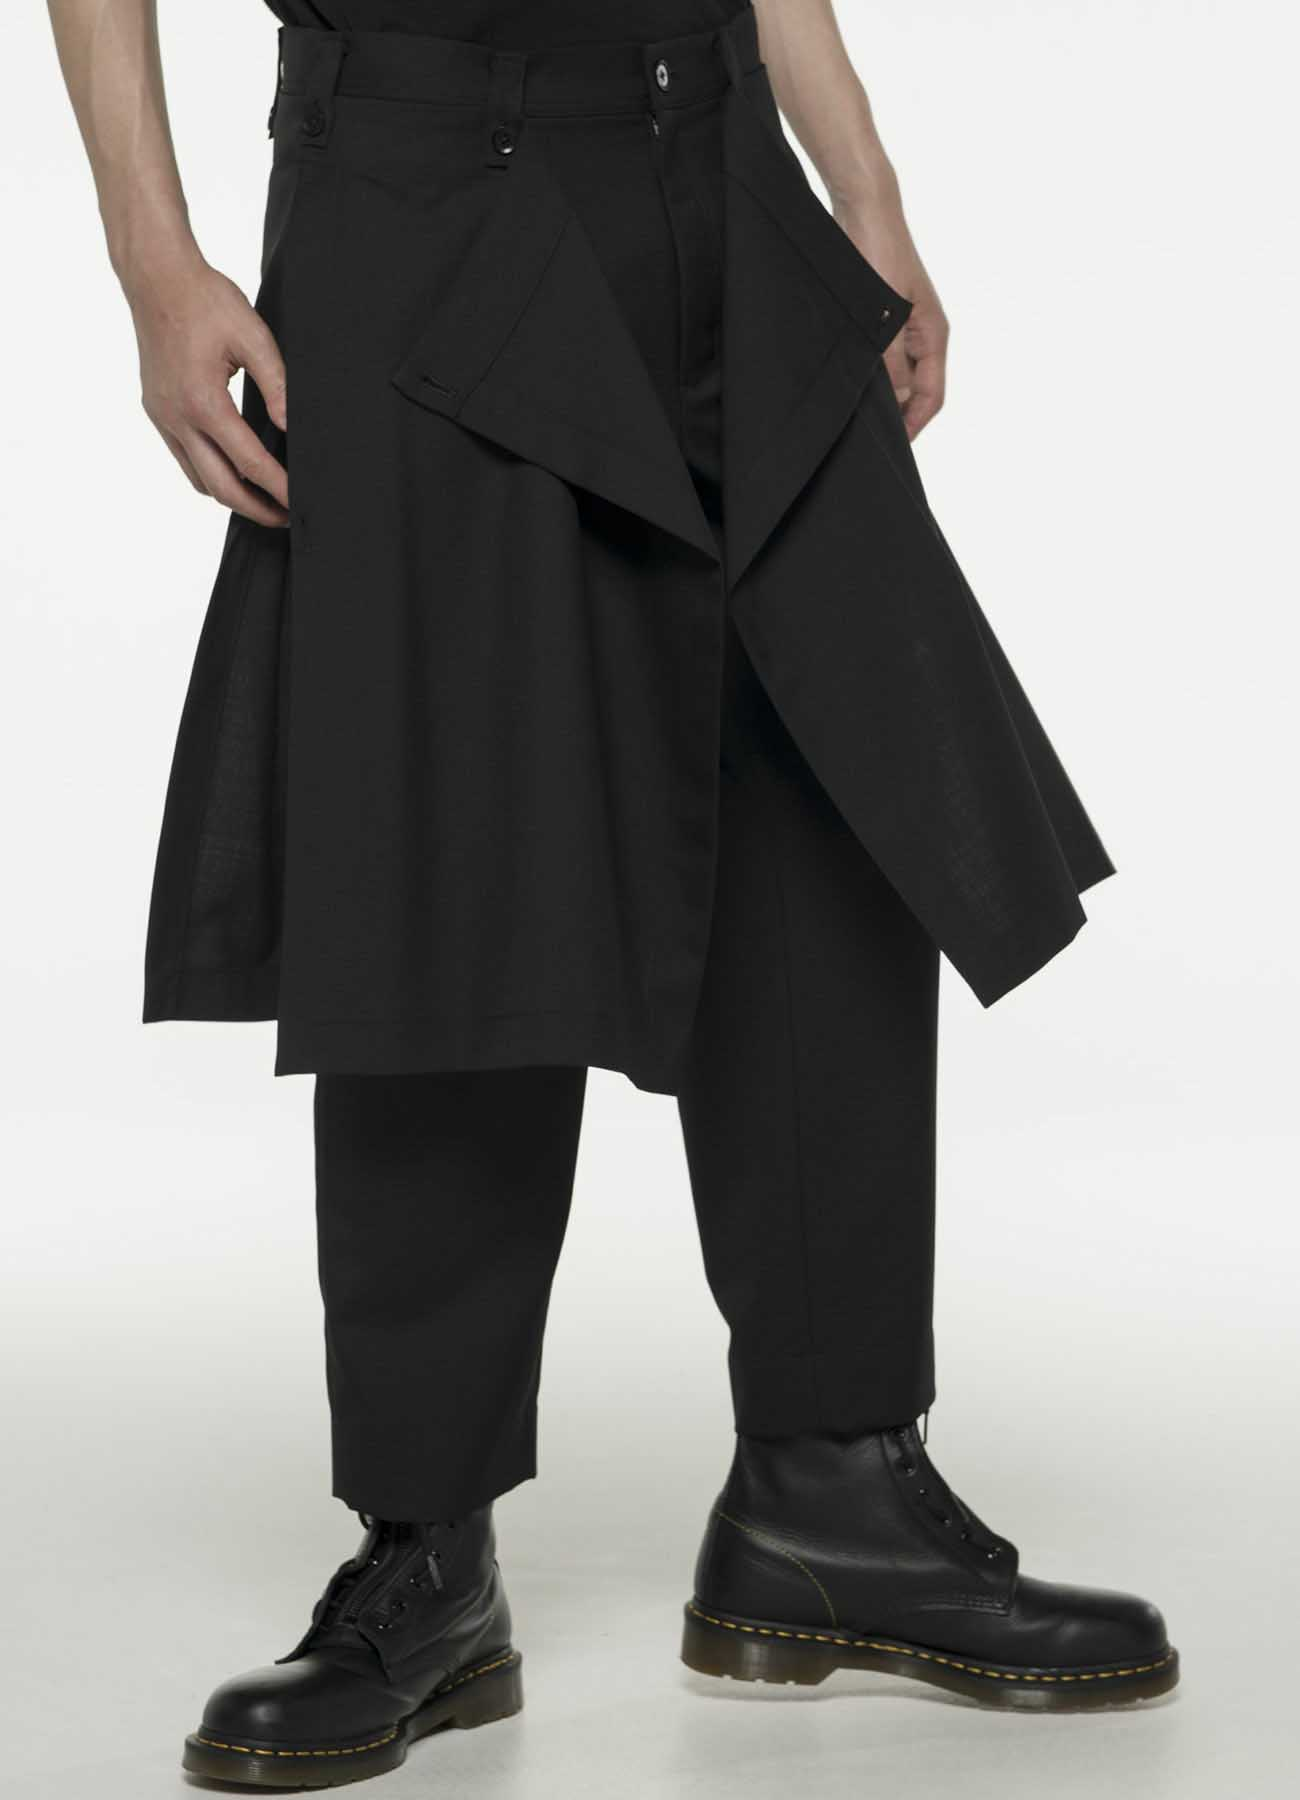 Classic W/E Gabardine Serge Tuck Pants with Skirt Attached